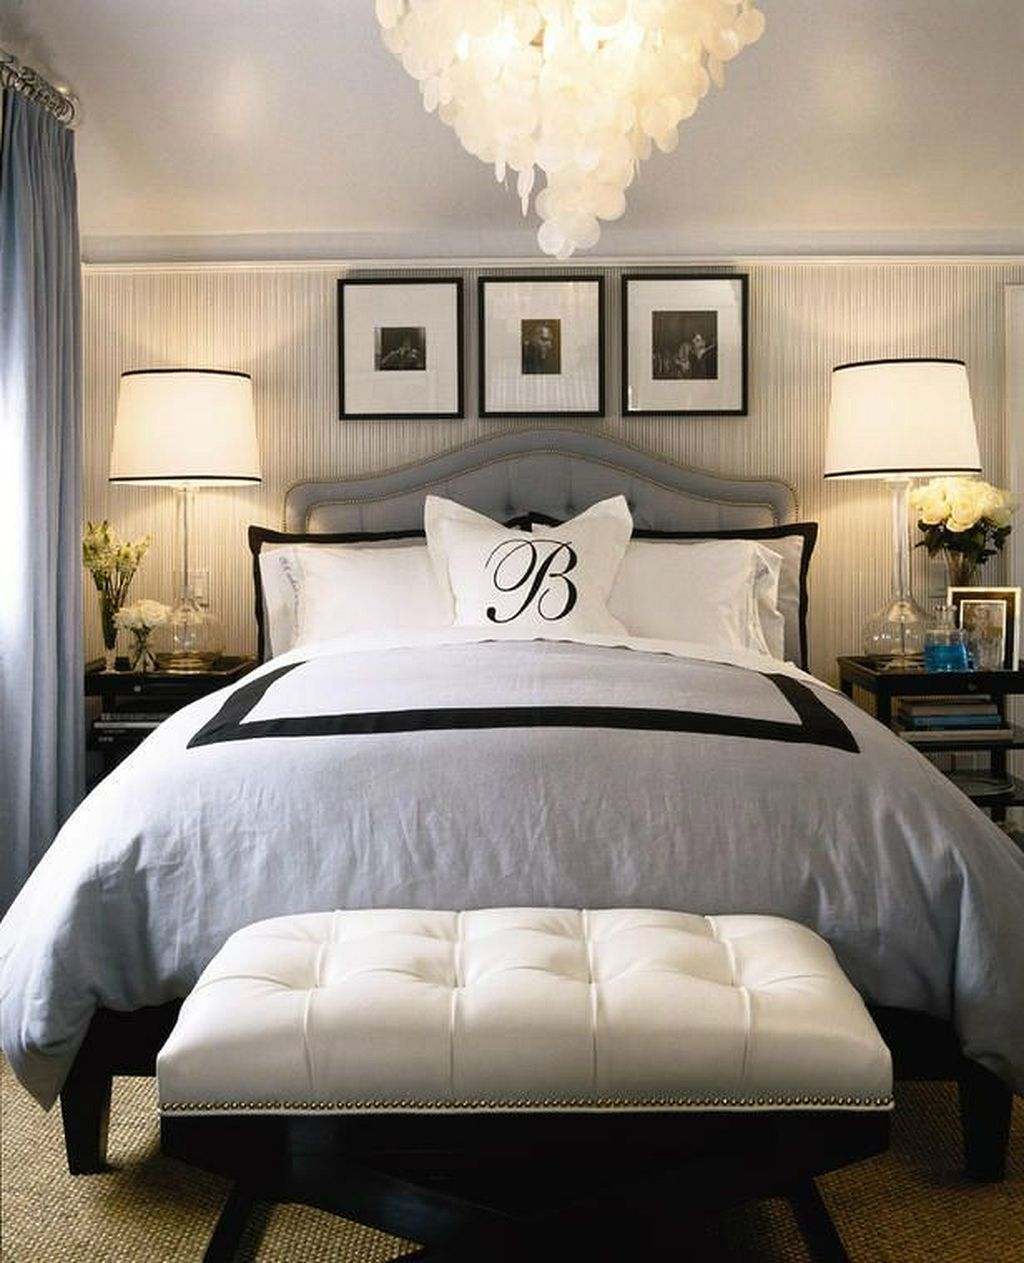 20 elegant master bedroom decorating ideas bedroom ideas rh pinterest com